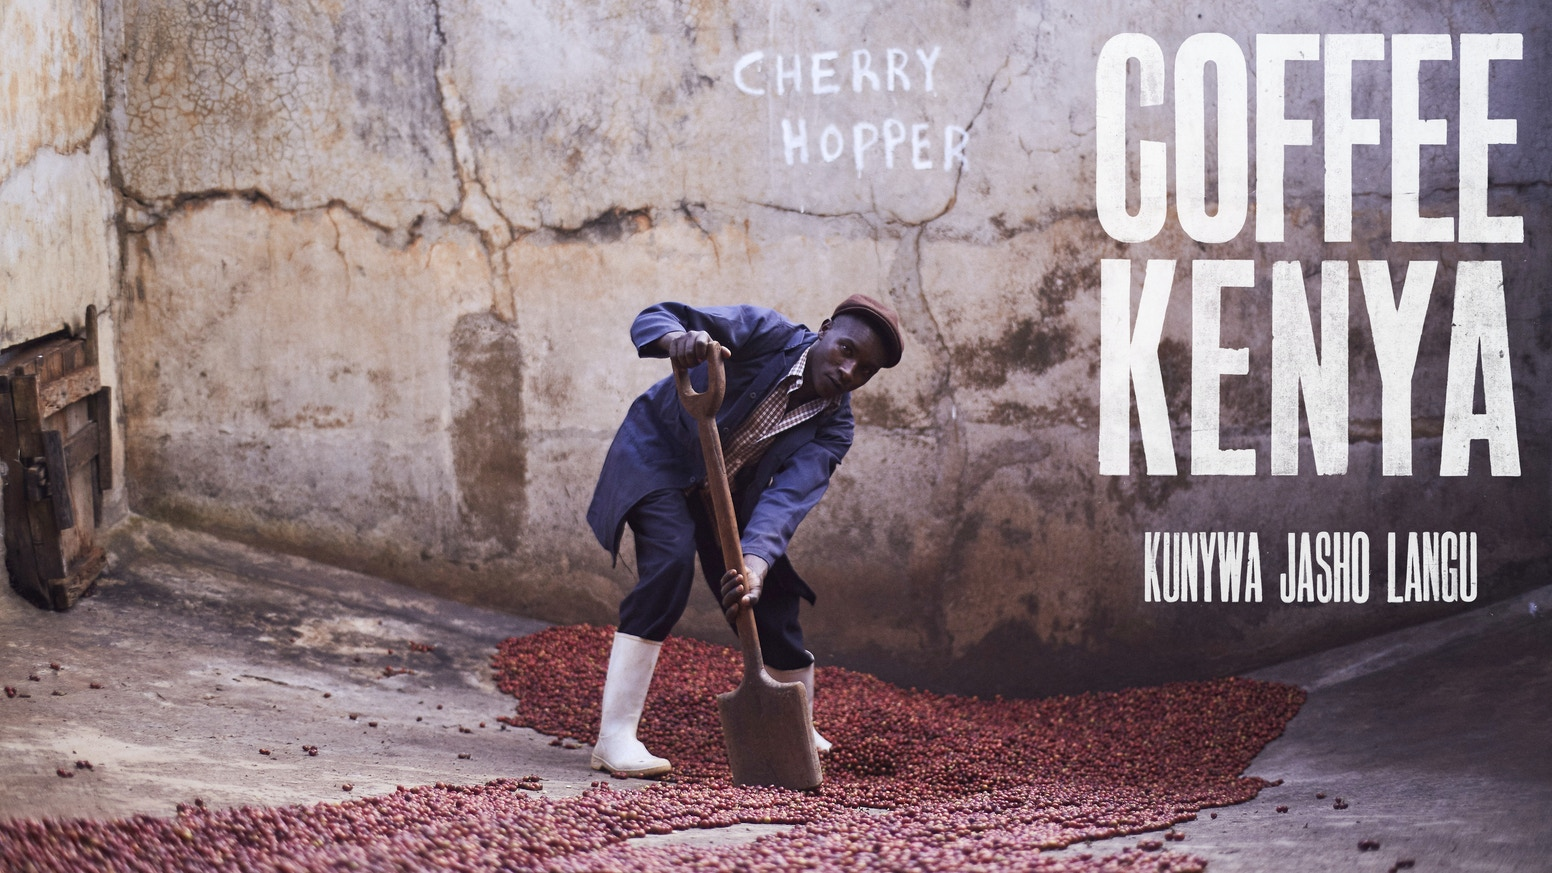 A stunning observation of the coffee industry in Kenya. Meticulously crafted pre-release photo book exclusive to Kickstarter.